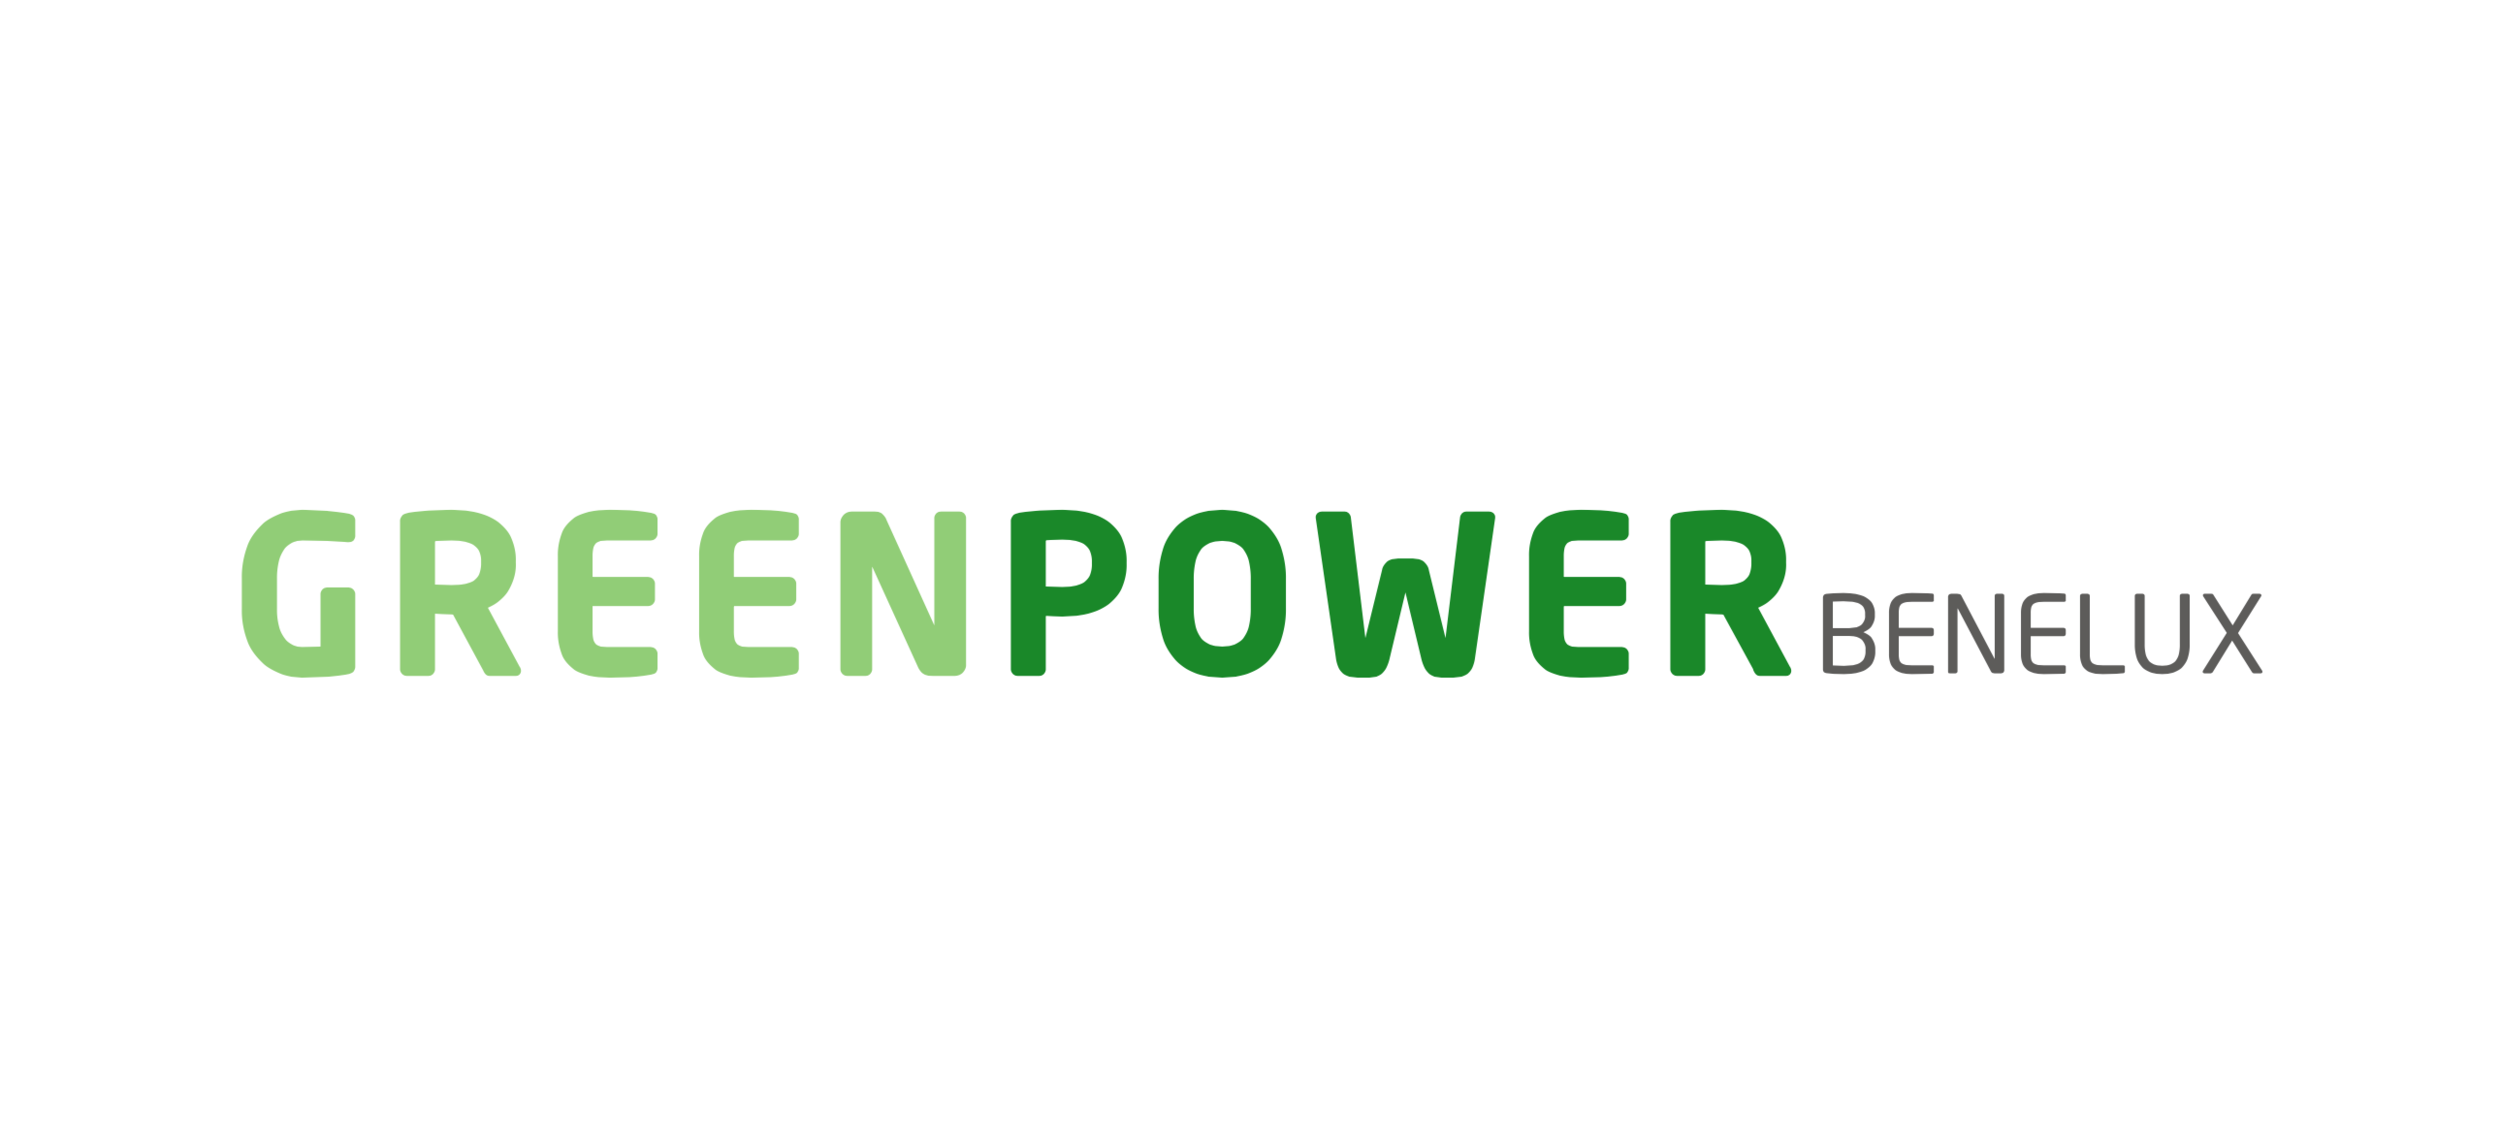 greenpower logo.png